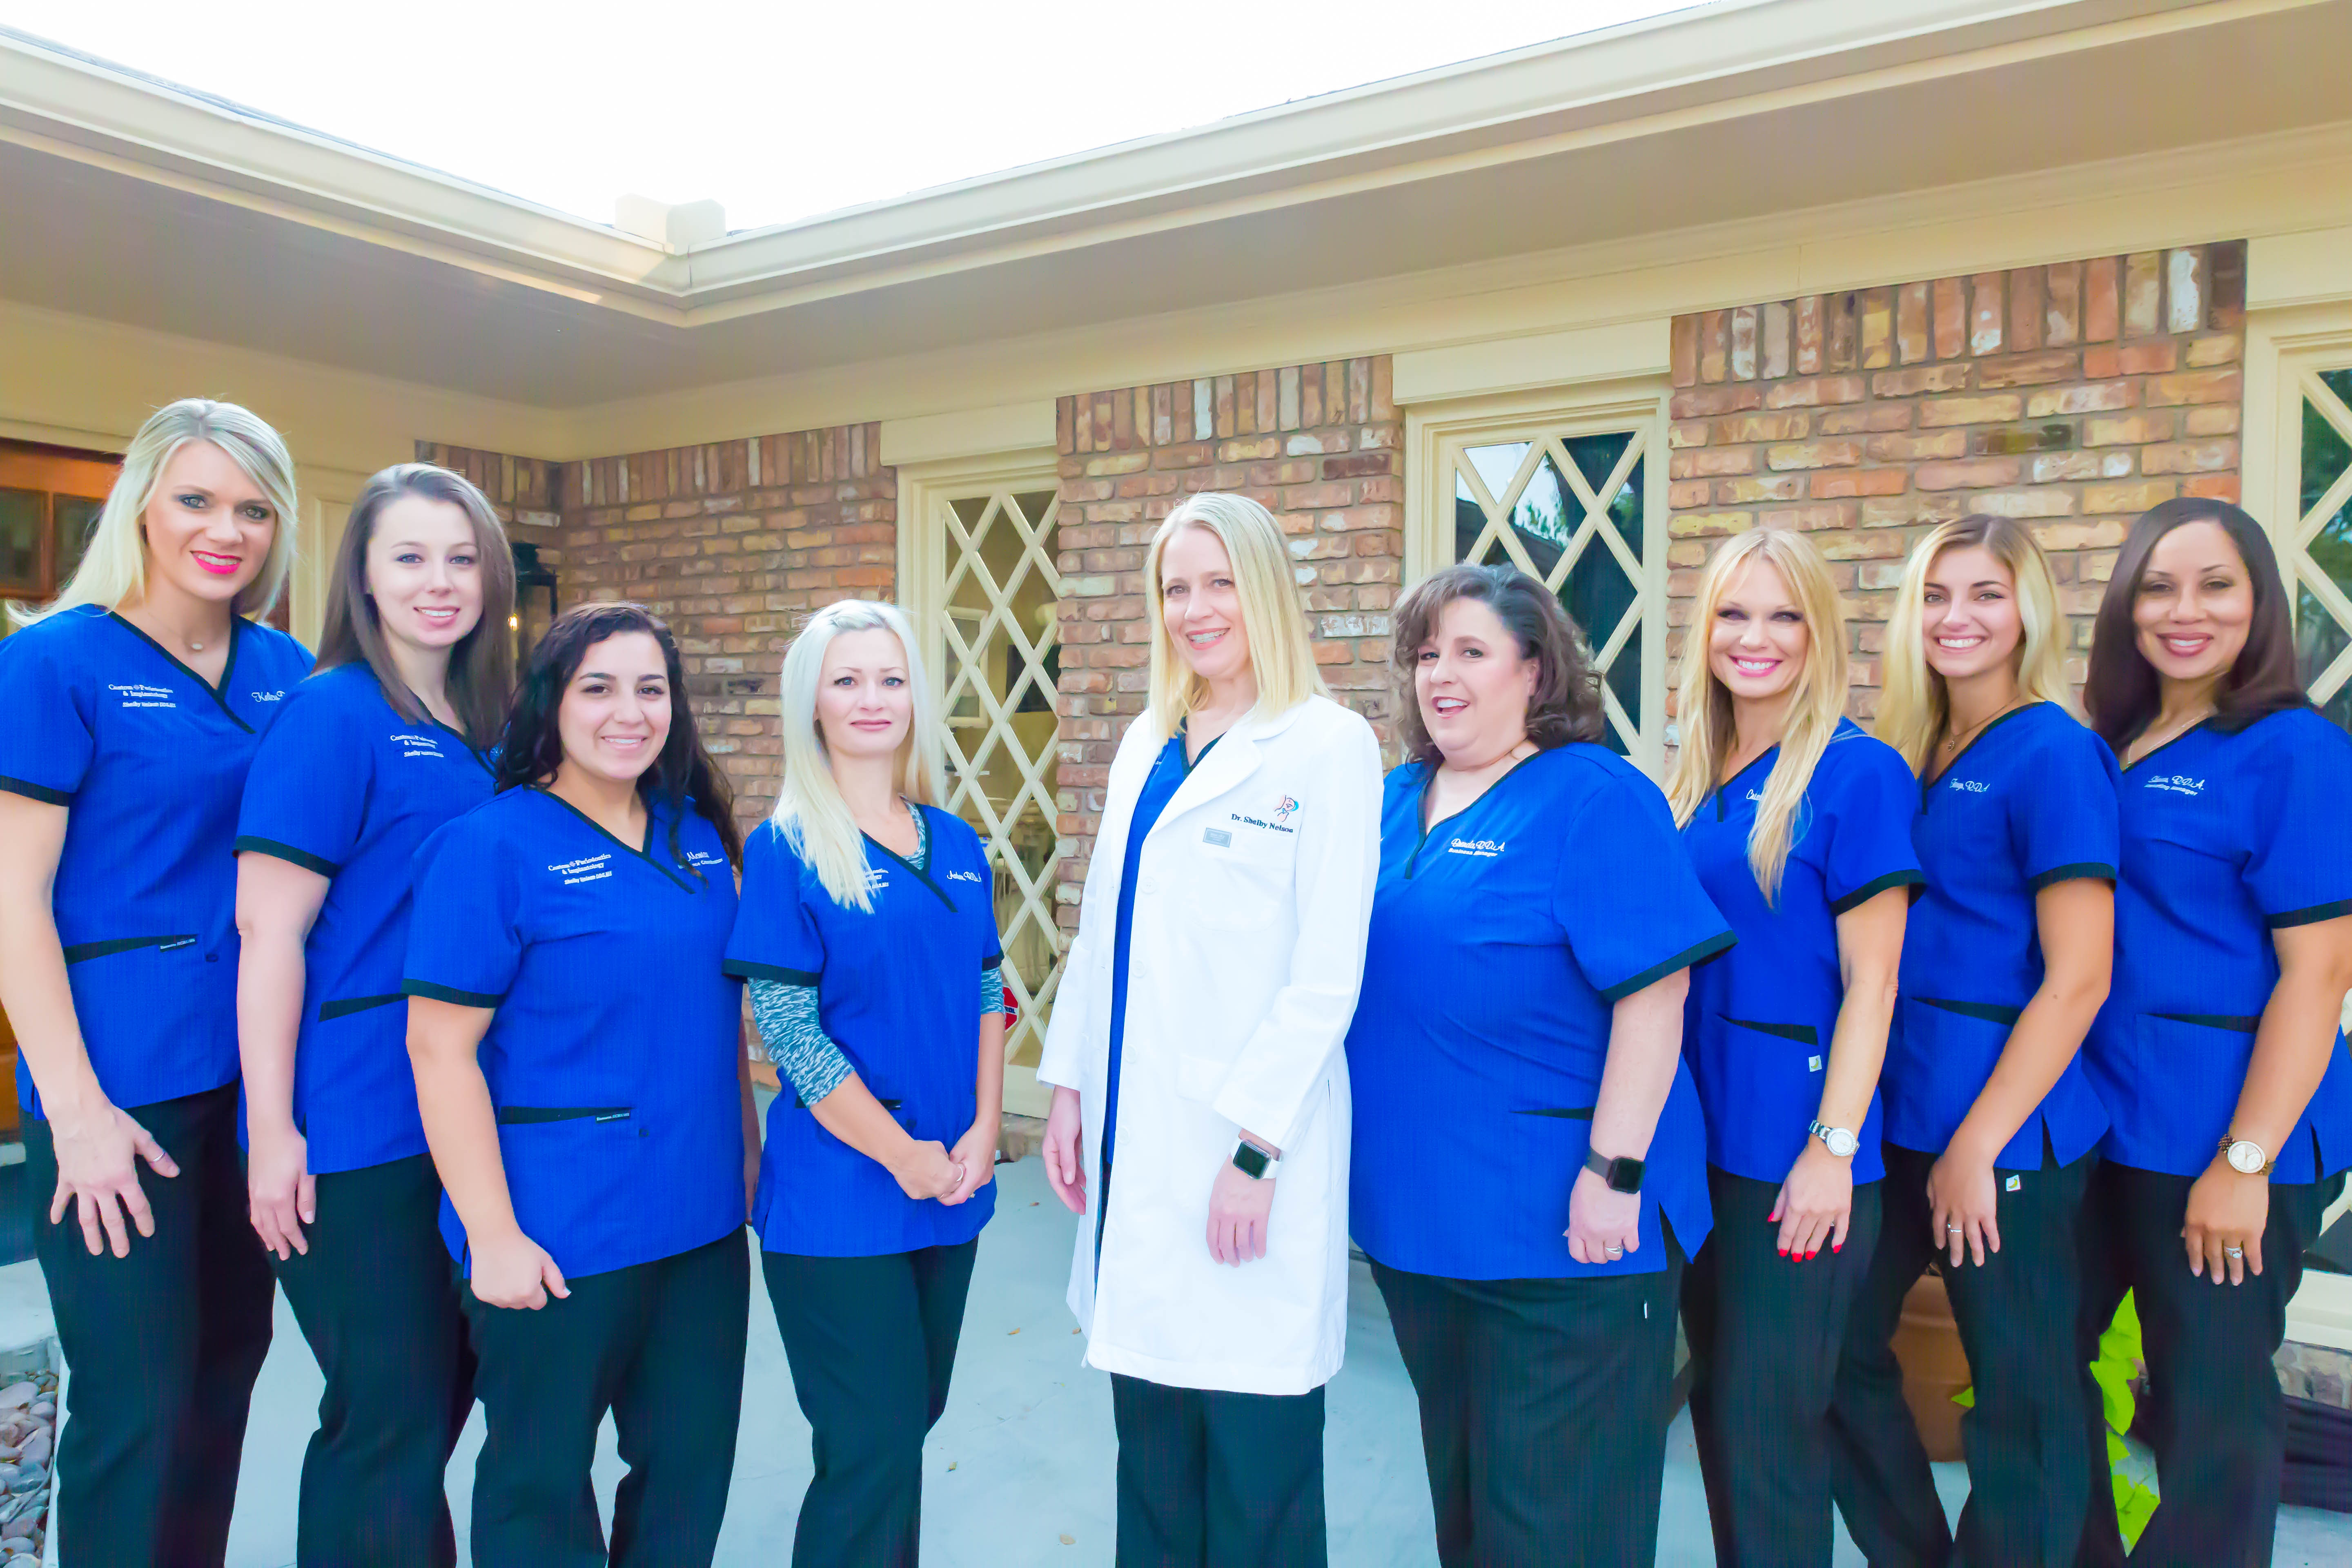 Shelby Nelson, DDS, MS: Custom Periodontics and Implantology reviews | Dentists at 3833 Camp Bowie Blvd - Fort Worth TX